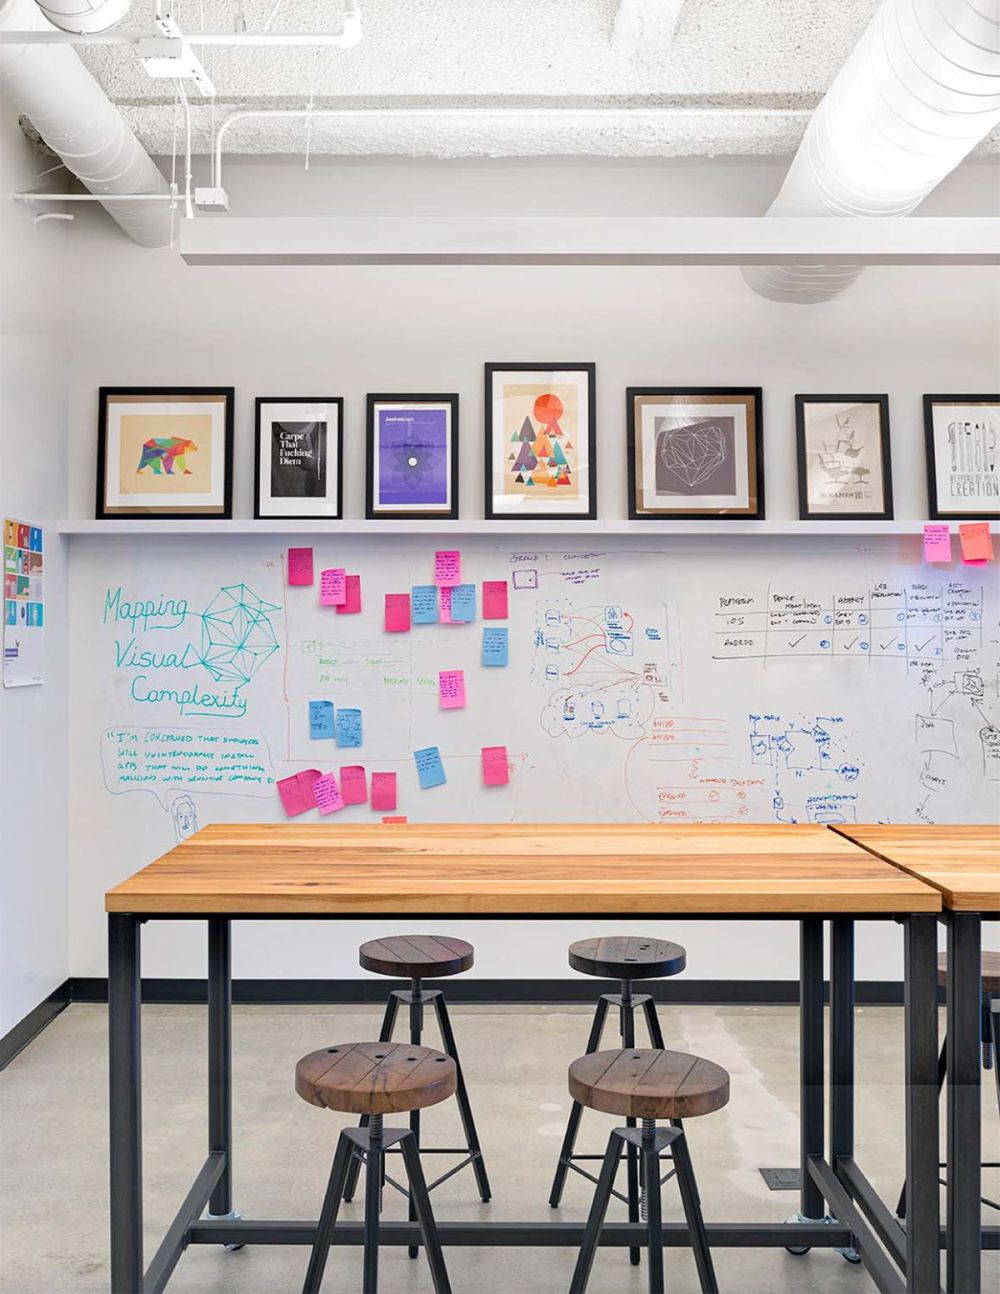 A meeting space with dry erase board walls make it easy for brainstorming, coaching, and learning sessions with employees.